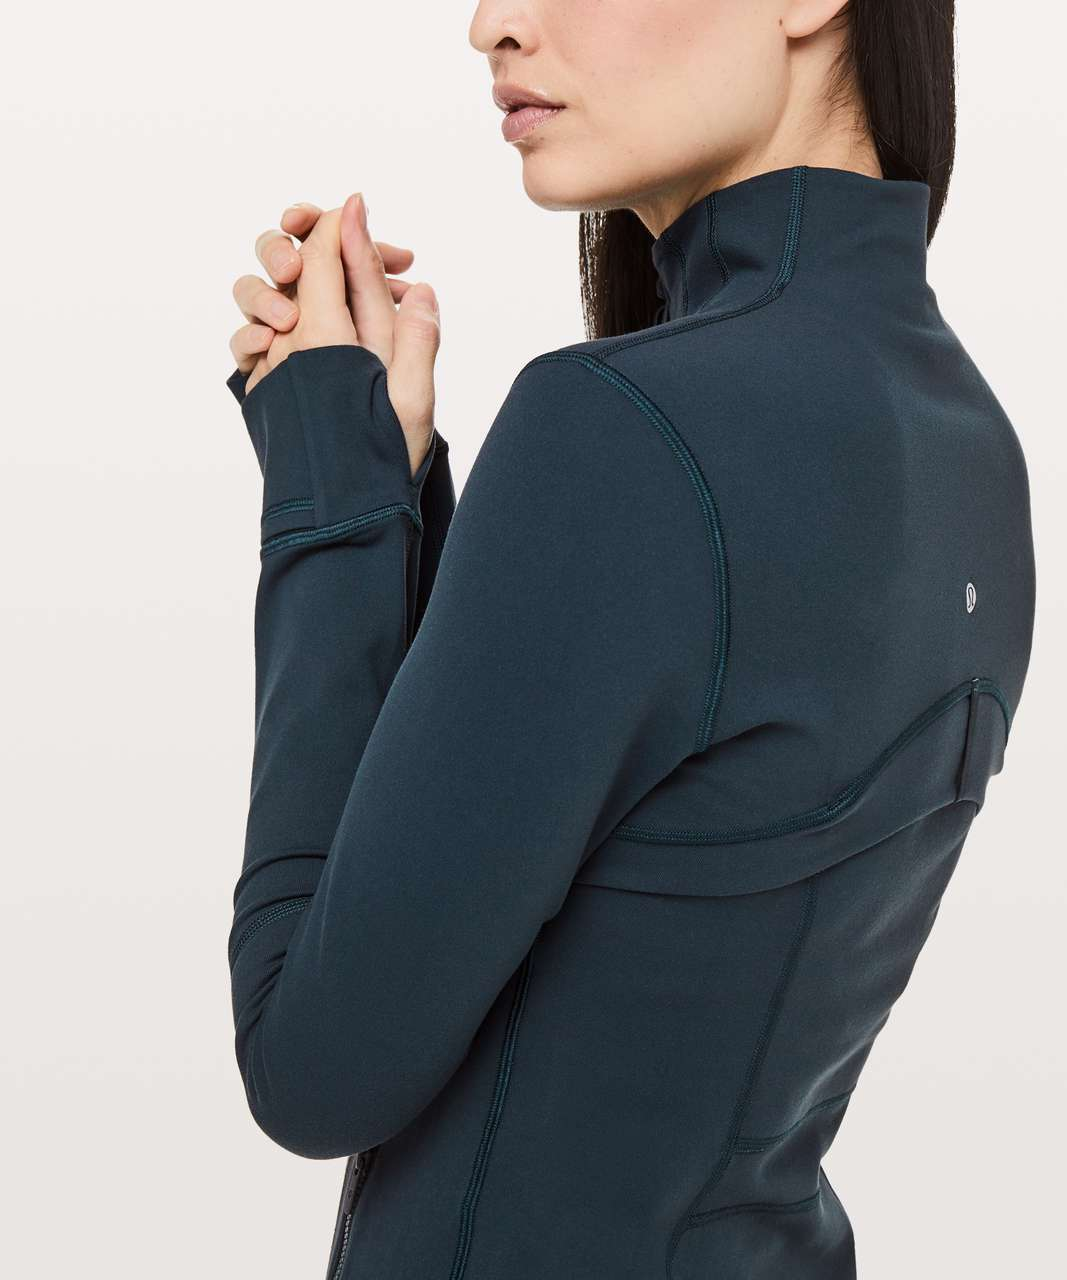 Lululemon Define Jacket - Nocturnal Teal